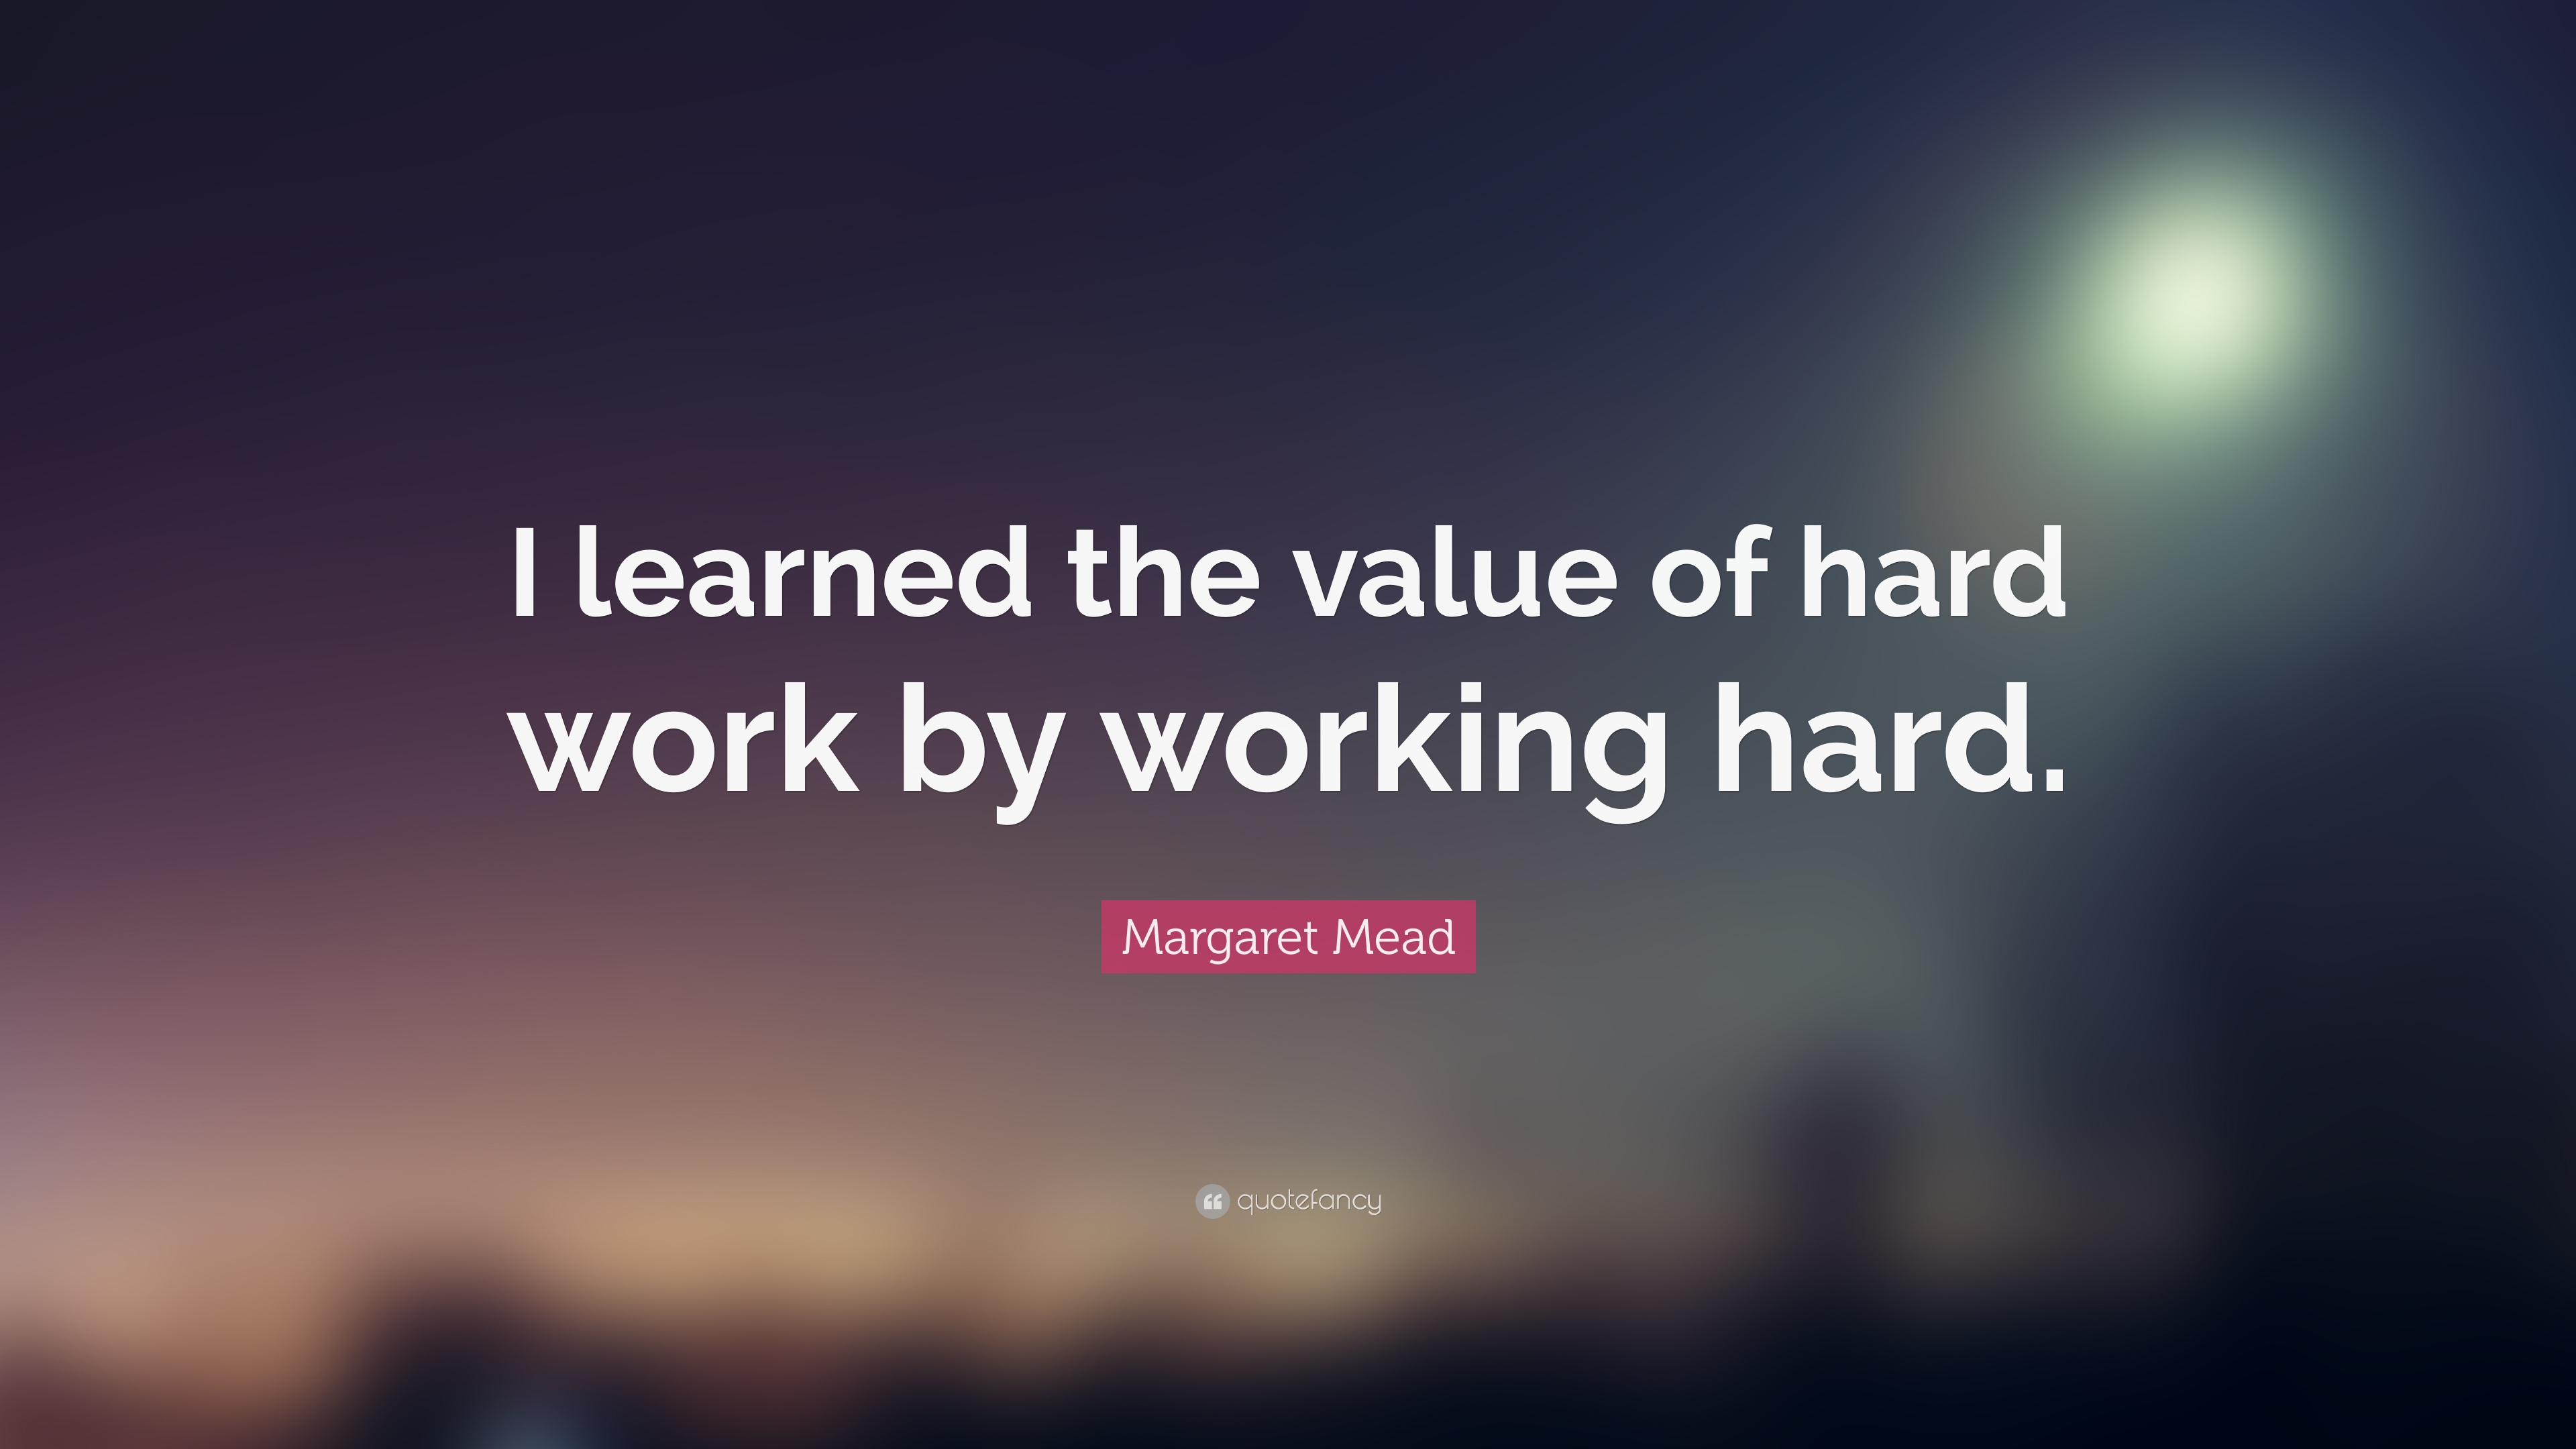 margaret mead quote i learned the value of hard work by working margaret mead quote i learned the value of hard work by working hard